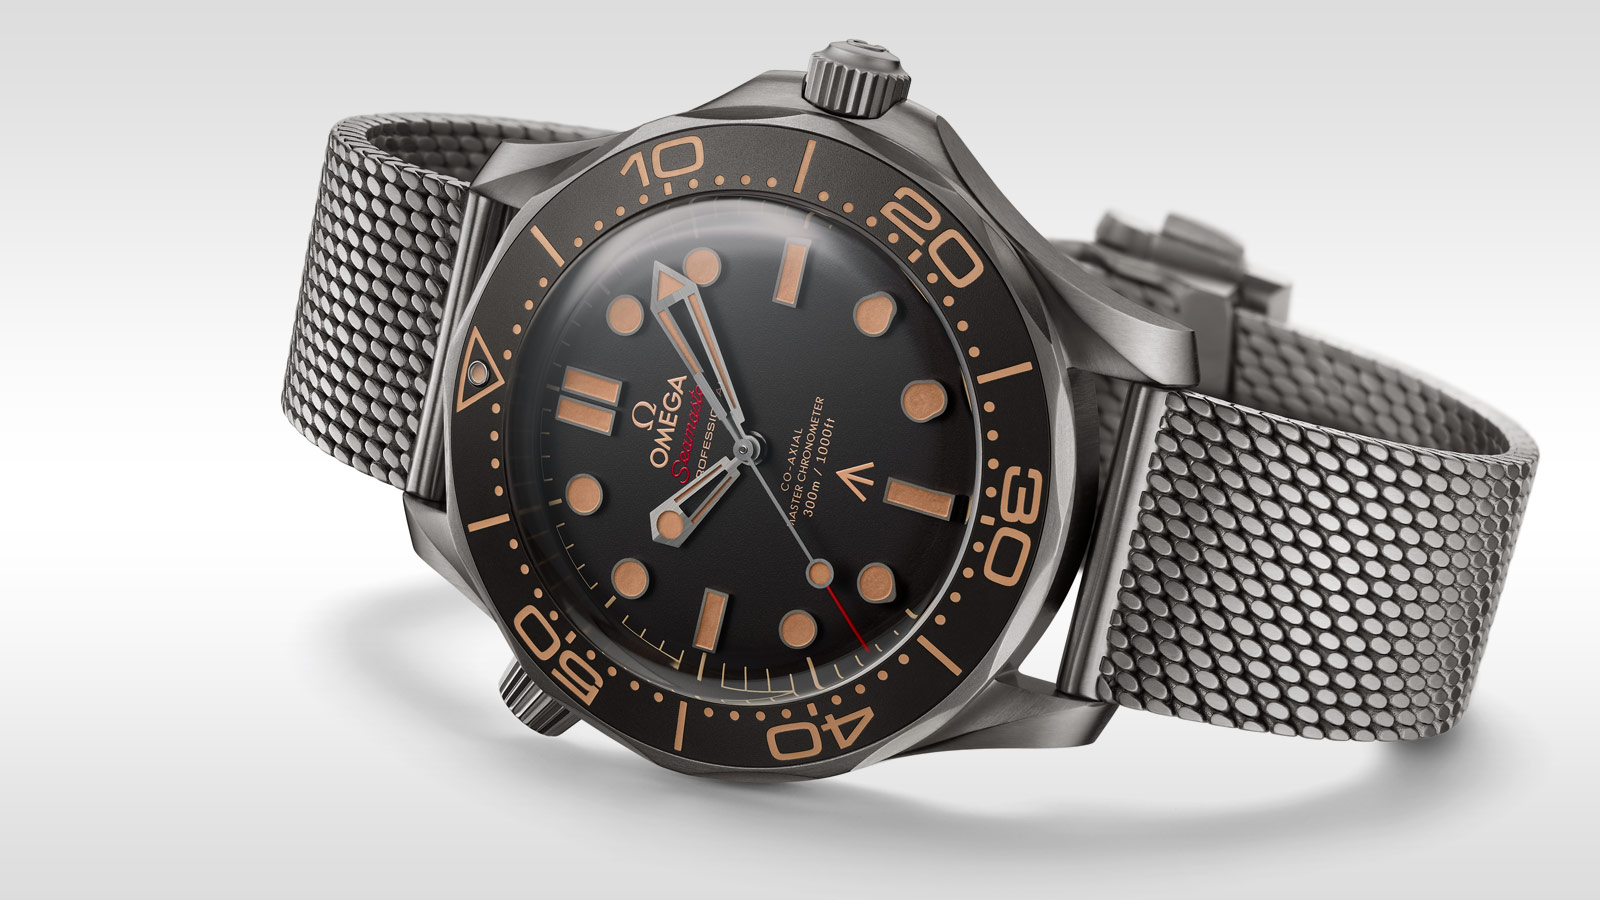 Seamaster Diver 300 M Diver 300M Omega Co‑Axial Master Chronometer 42 mm - 210.90.42.20.01.001 - View 5